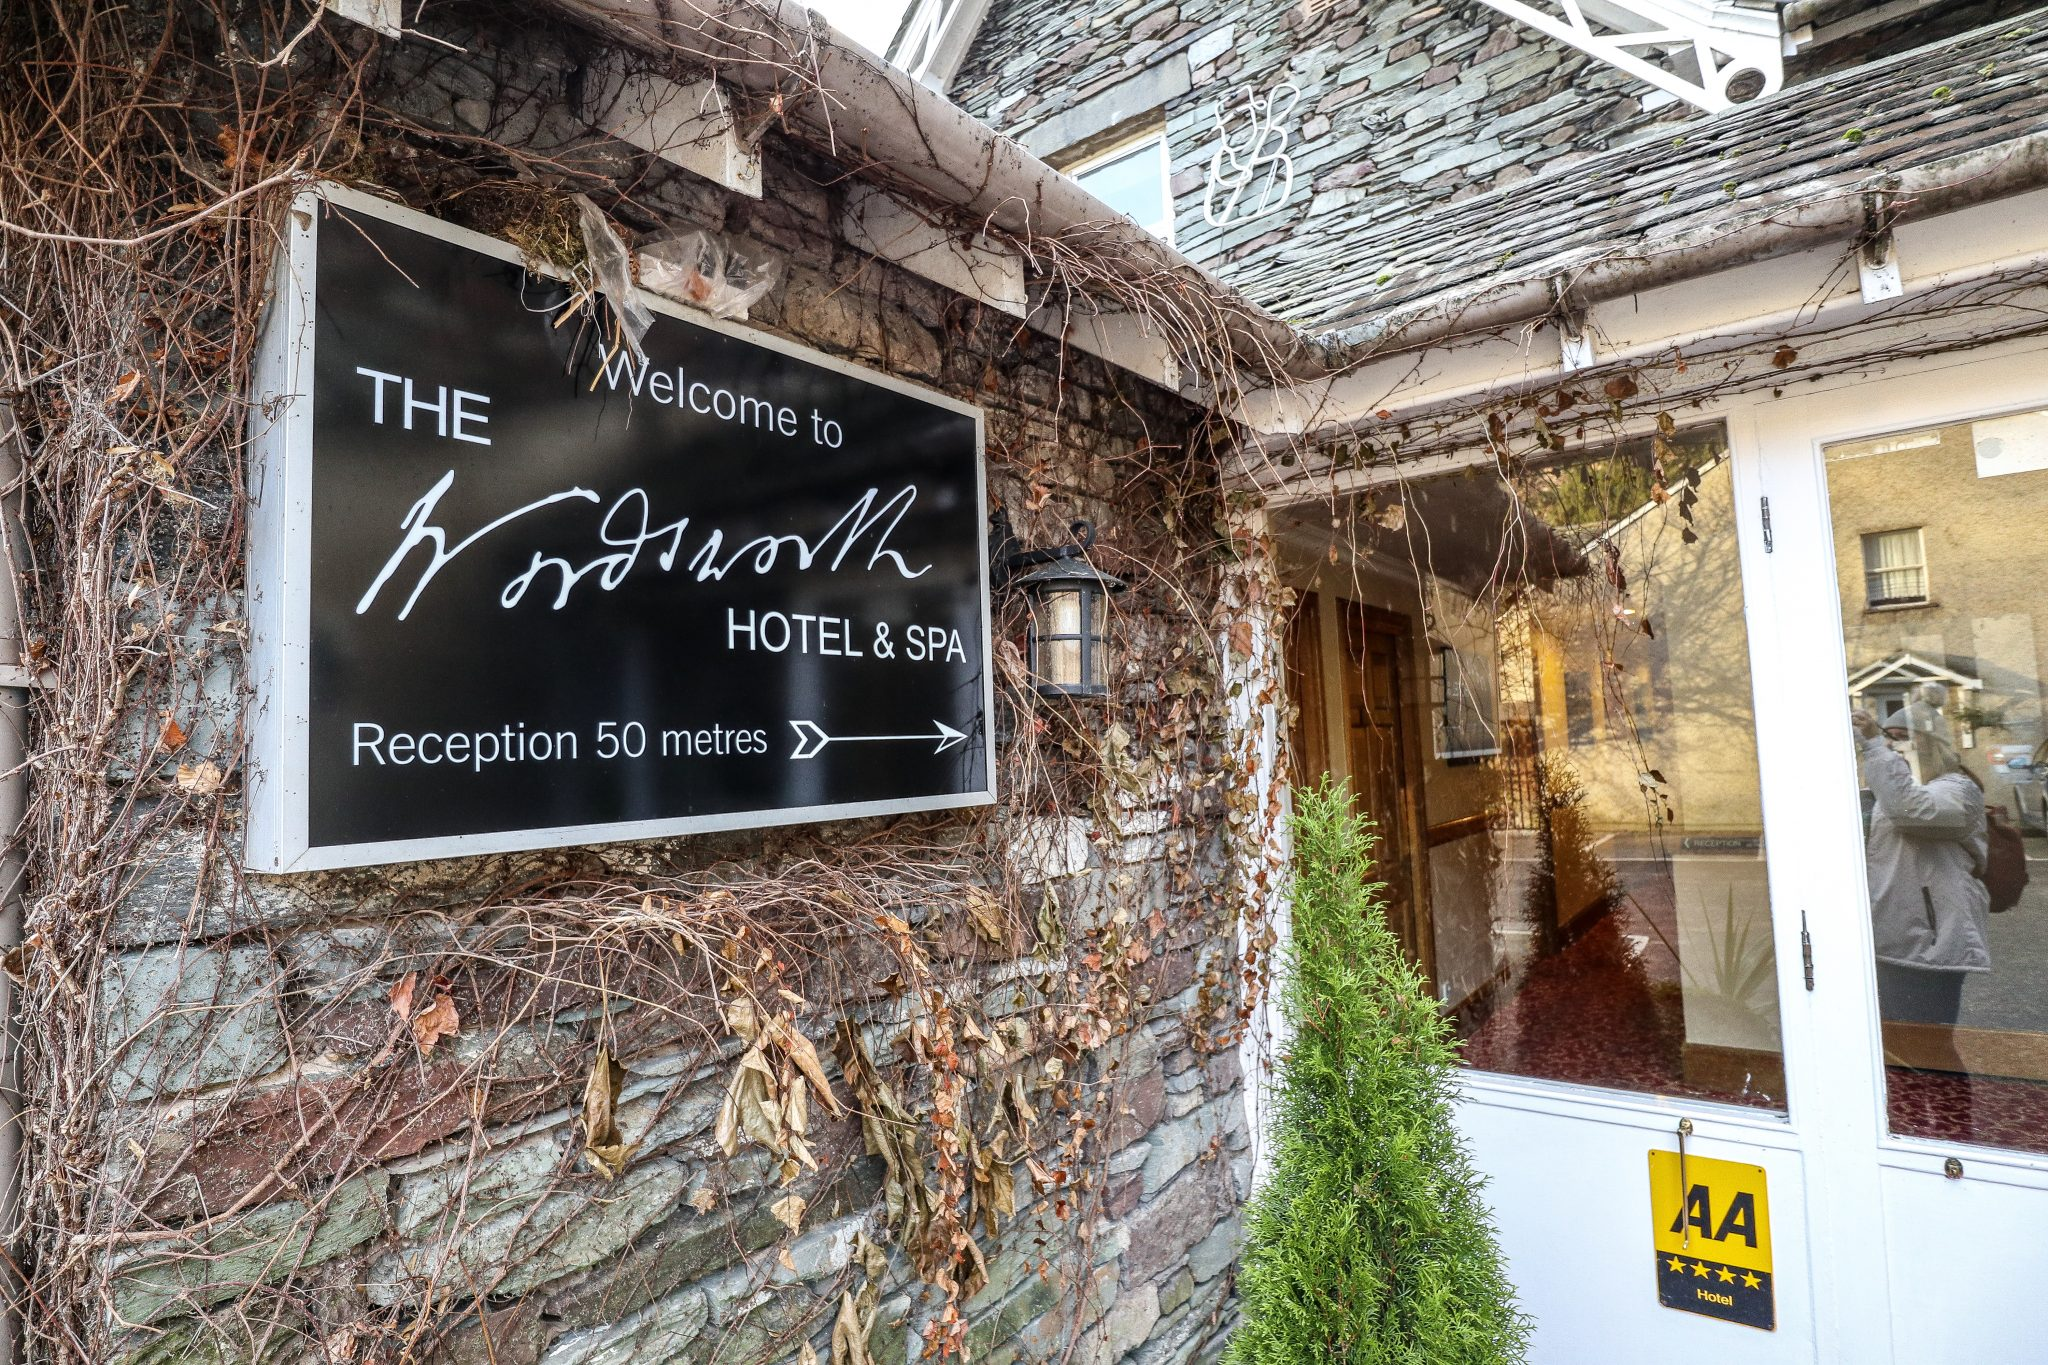 The Wordsworth Hotel & Spa, Grasmere, Lake District, England